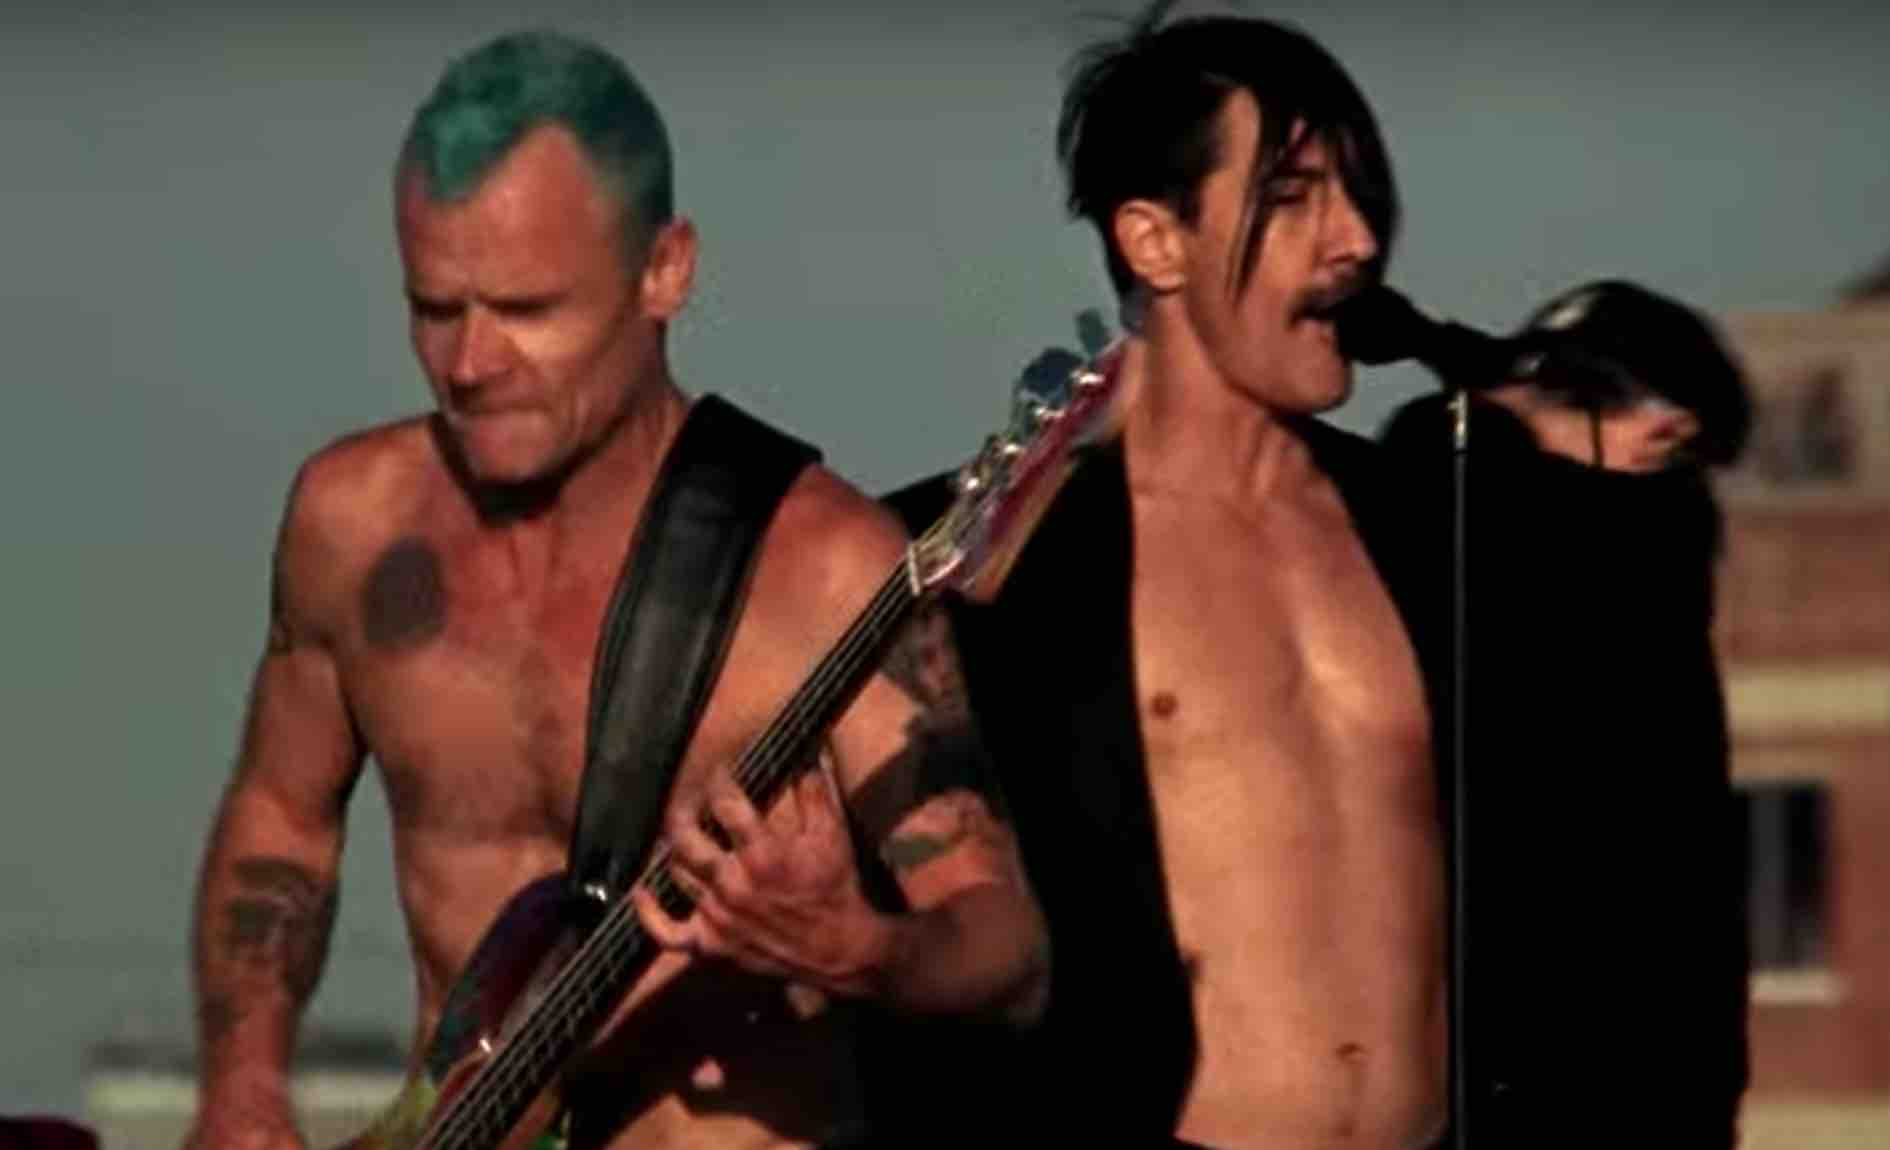 83a5a5489fc5 Red Hot Chili Peppers have announced that they are making a documentary  movie about their recent concert in Egypt